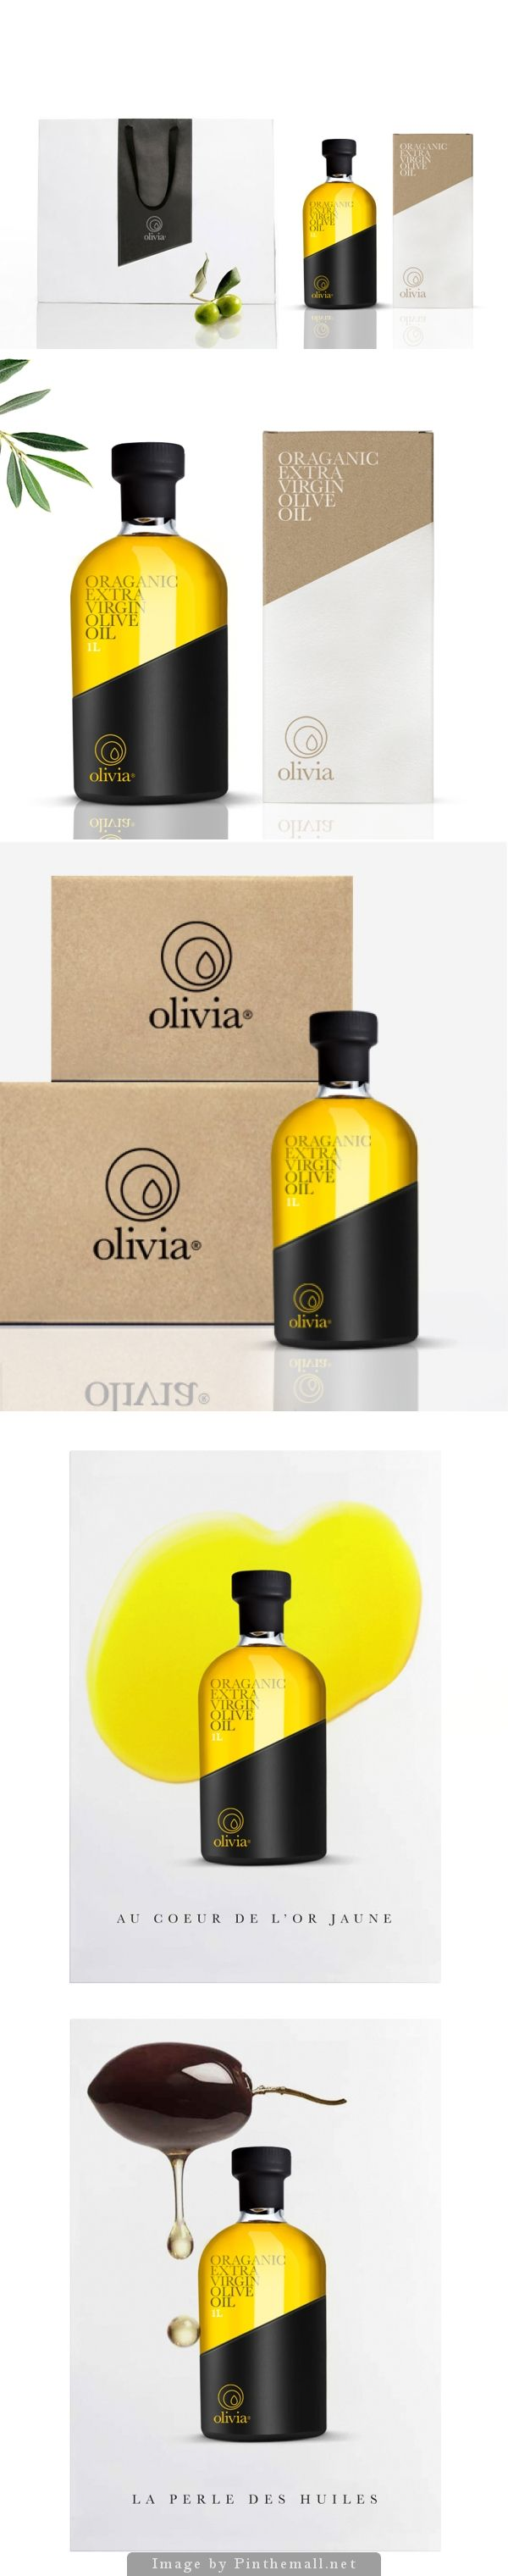 marketing olive oil: a case study from greece essay In the uk market, spanish olive oil exporters aims to distribute its olive products   equally, the marketing team, though research, has studied the marketed, and  analyzed the  increasing competition from olive oil imported from italy and  greece  essay, research paper, report, case study, term paper, admission  essay.